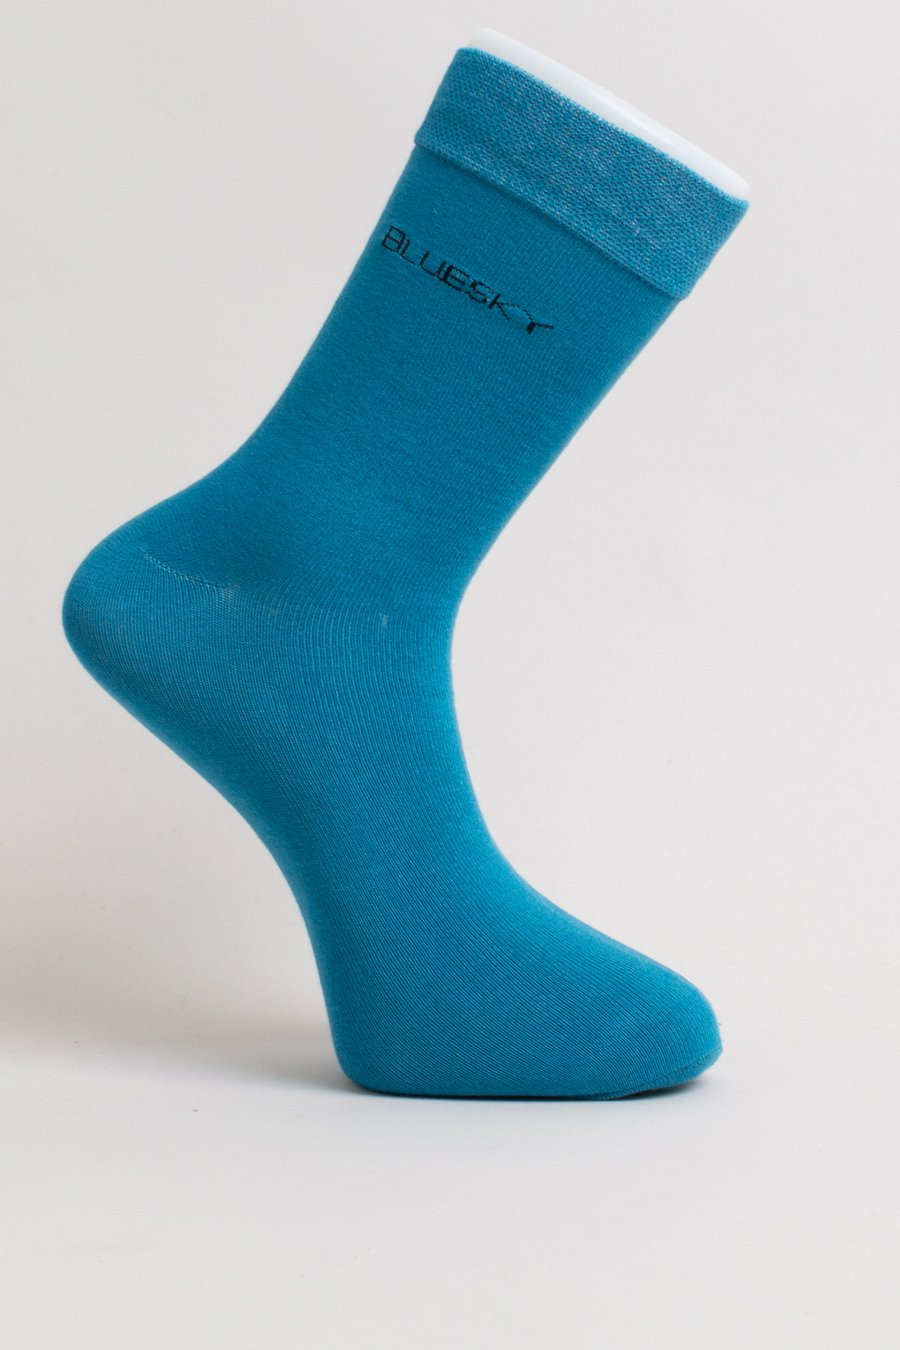 Men's Dress Sock, Bamboo - Blue Sky Clothing Co